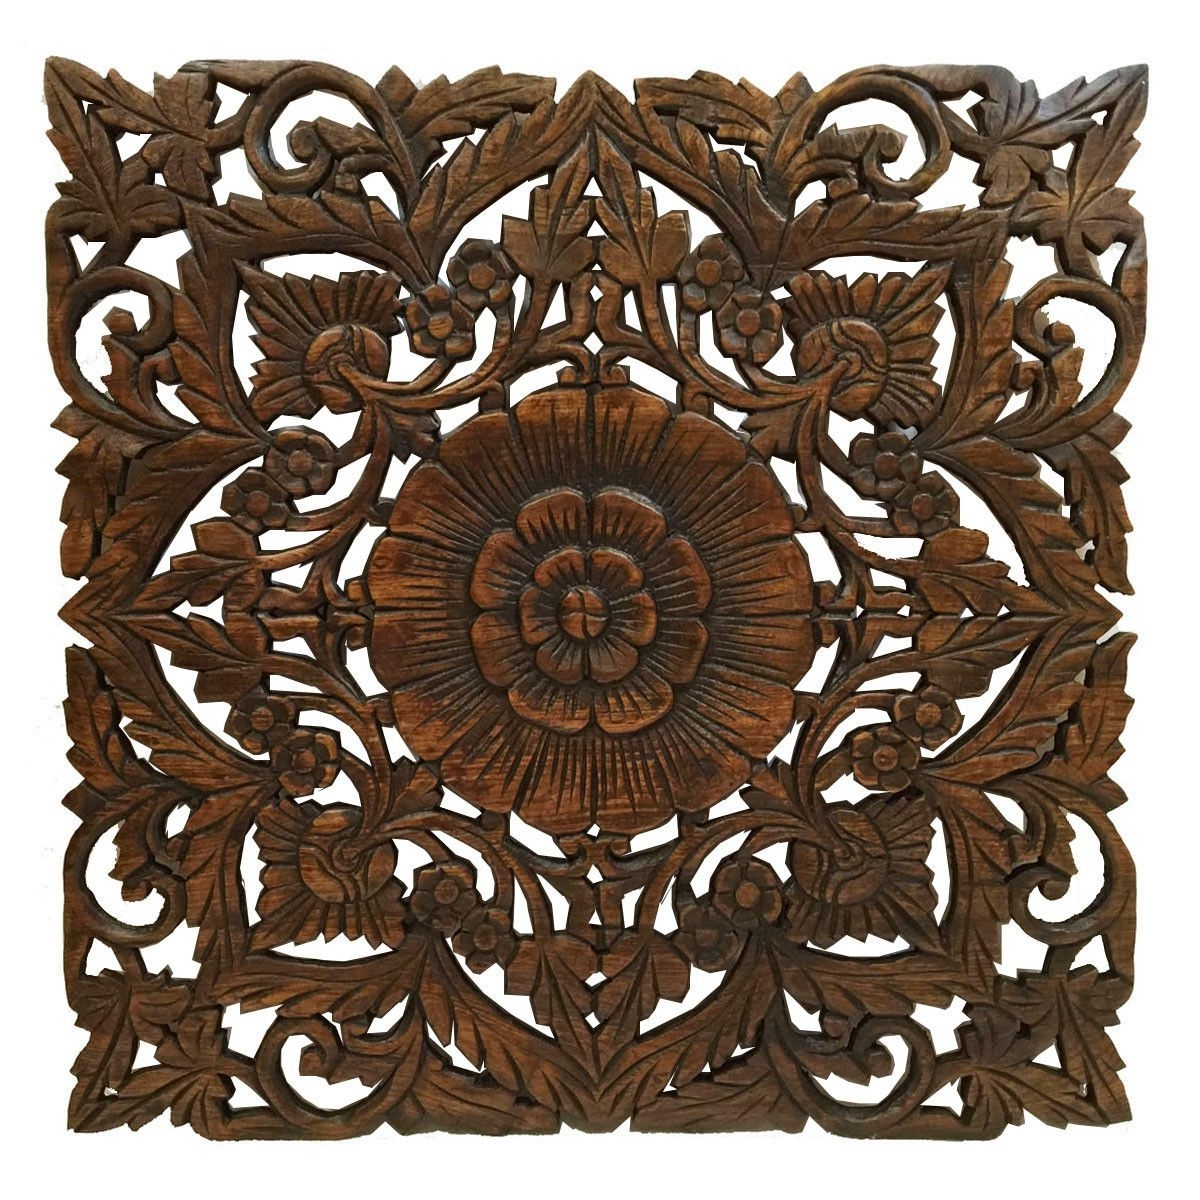 Preferred Oriental Carved Floral Wall Decor. Unique Asian Wood Wall Art (View 19 of 20)